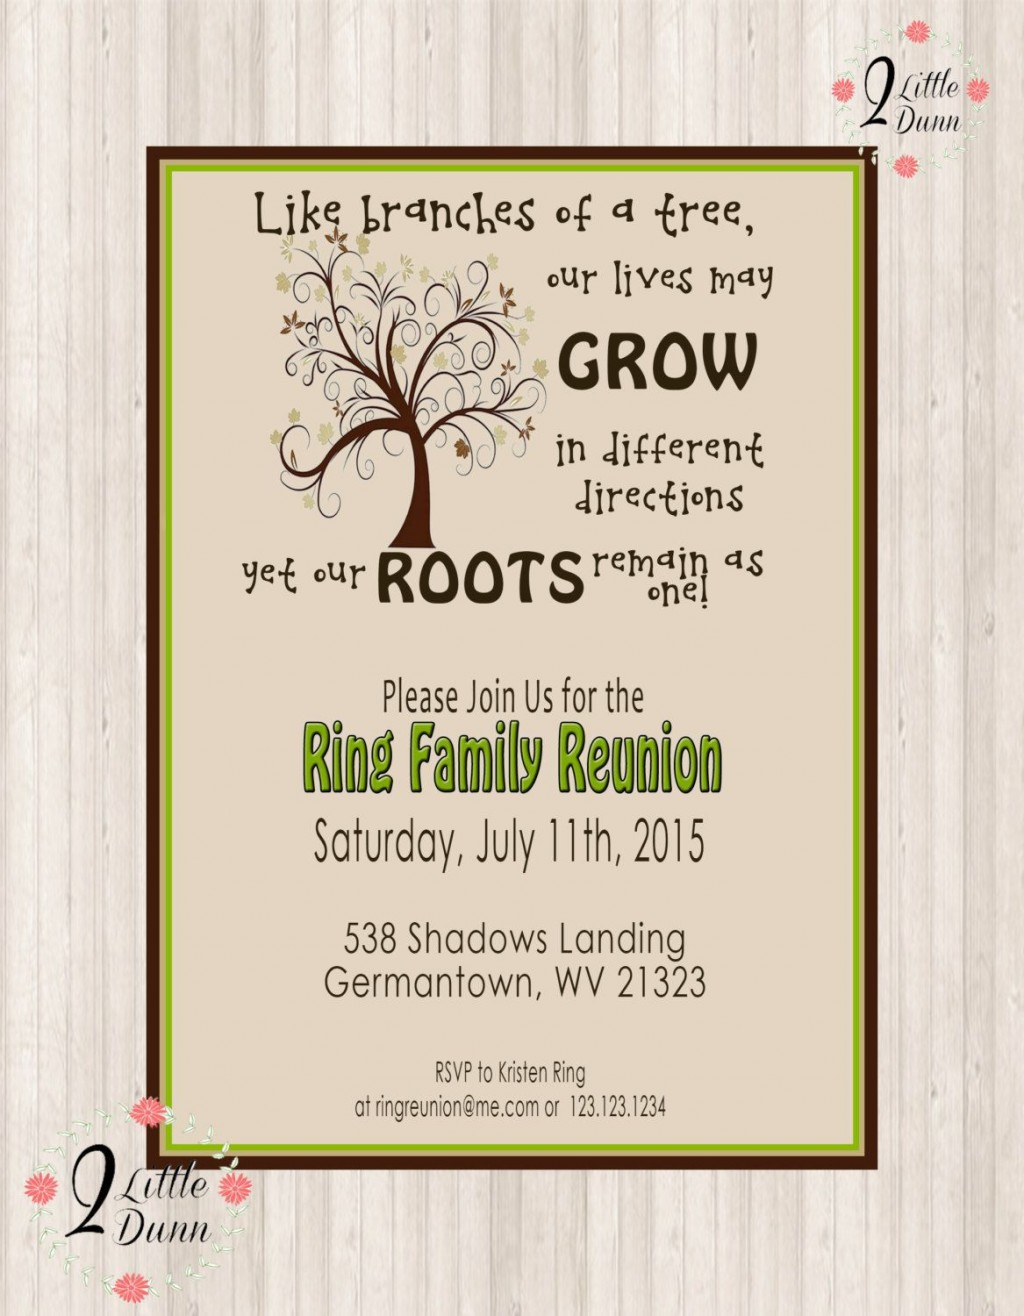 002 Imposing Family Reunion Invitation Template Free Highest Clarity  For Word OnlineLarge